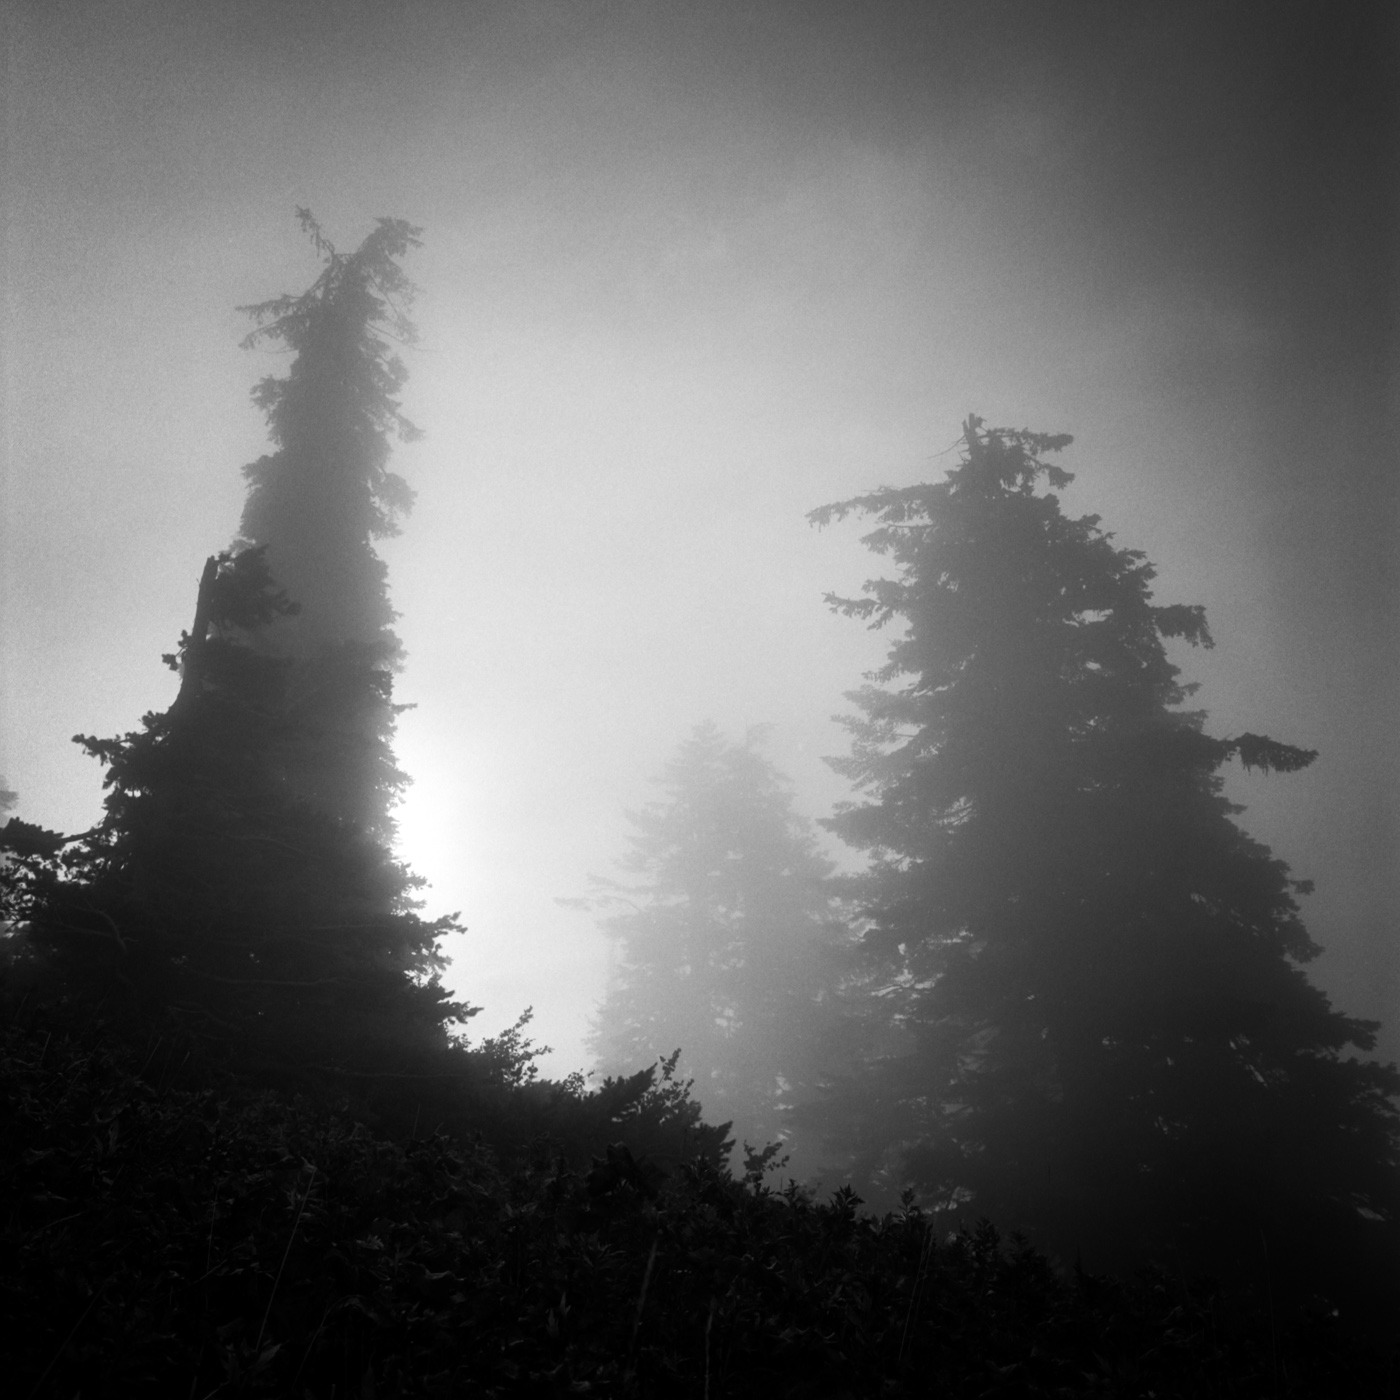 Trees and Fog, Dog Mountain, August 2017